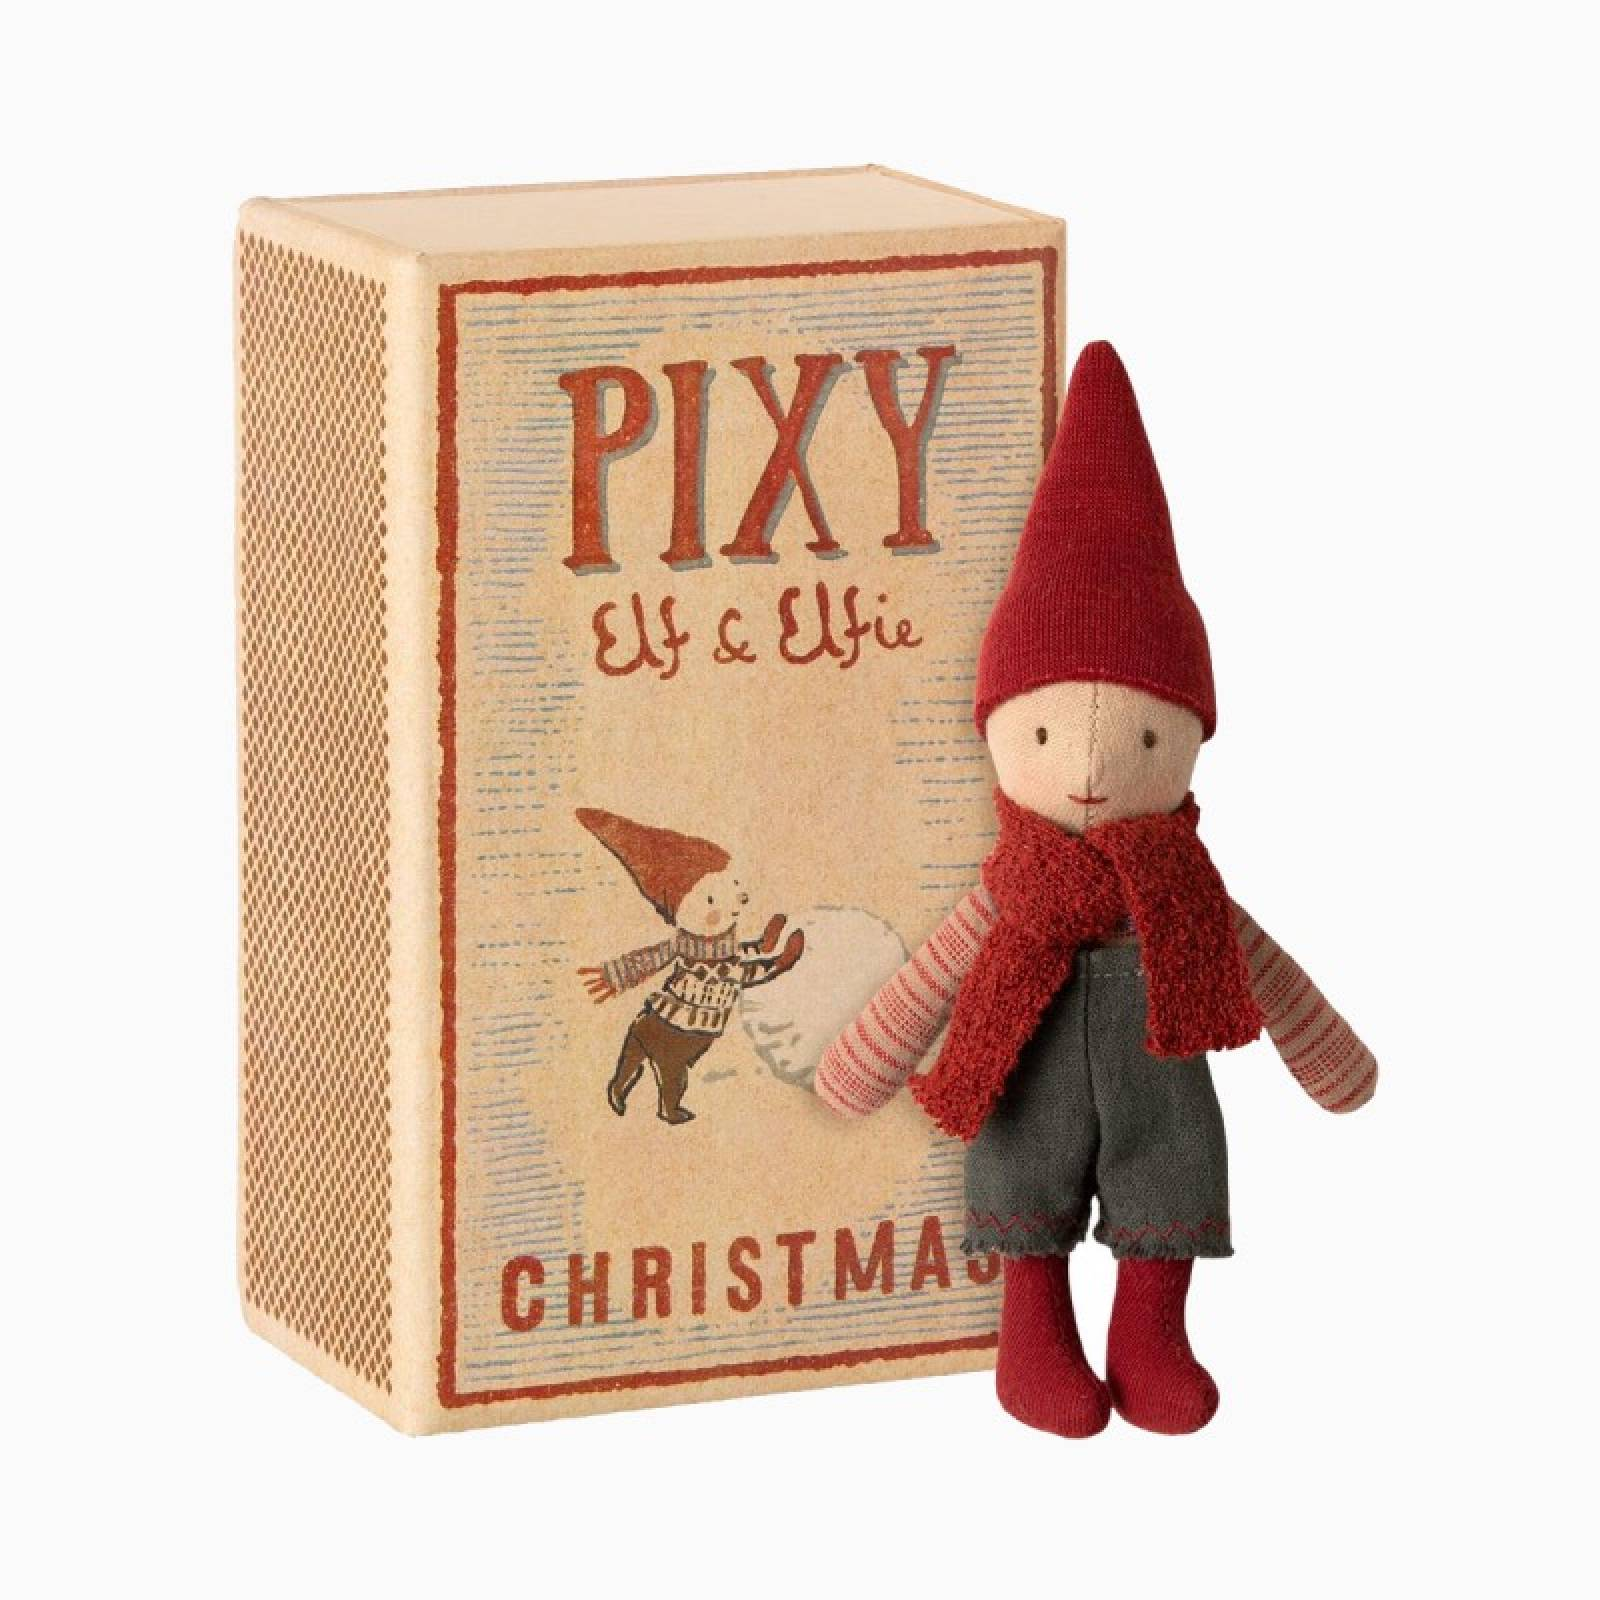 Pixy Elf In A Matchbox Christmas Soft Toy 3+